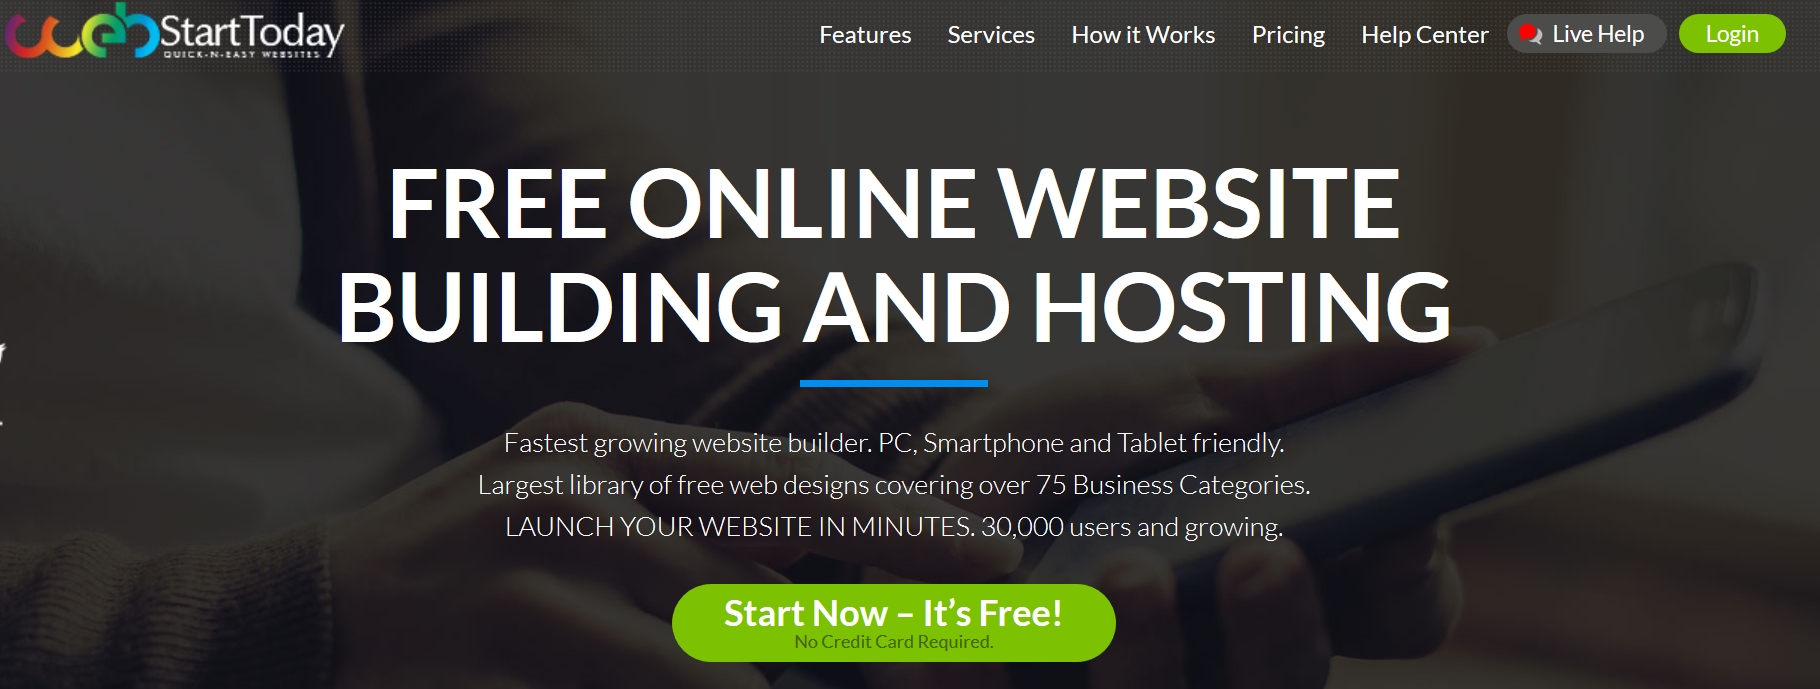 easy ways to make a website for your online presence active users and its large userbase doesn t come as a surprise considering the features tools and flexible templates this website builder has to offer